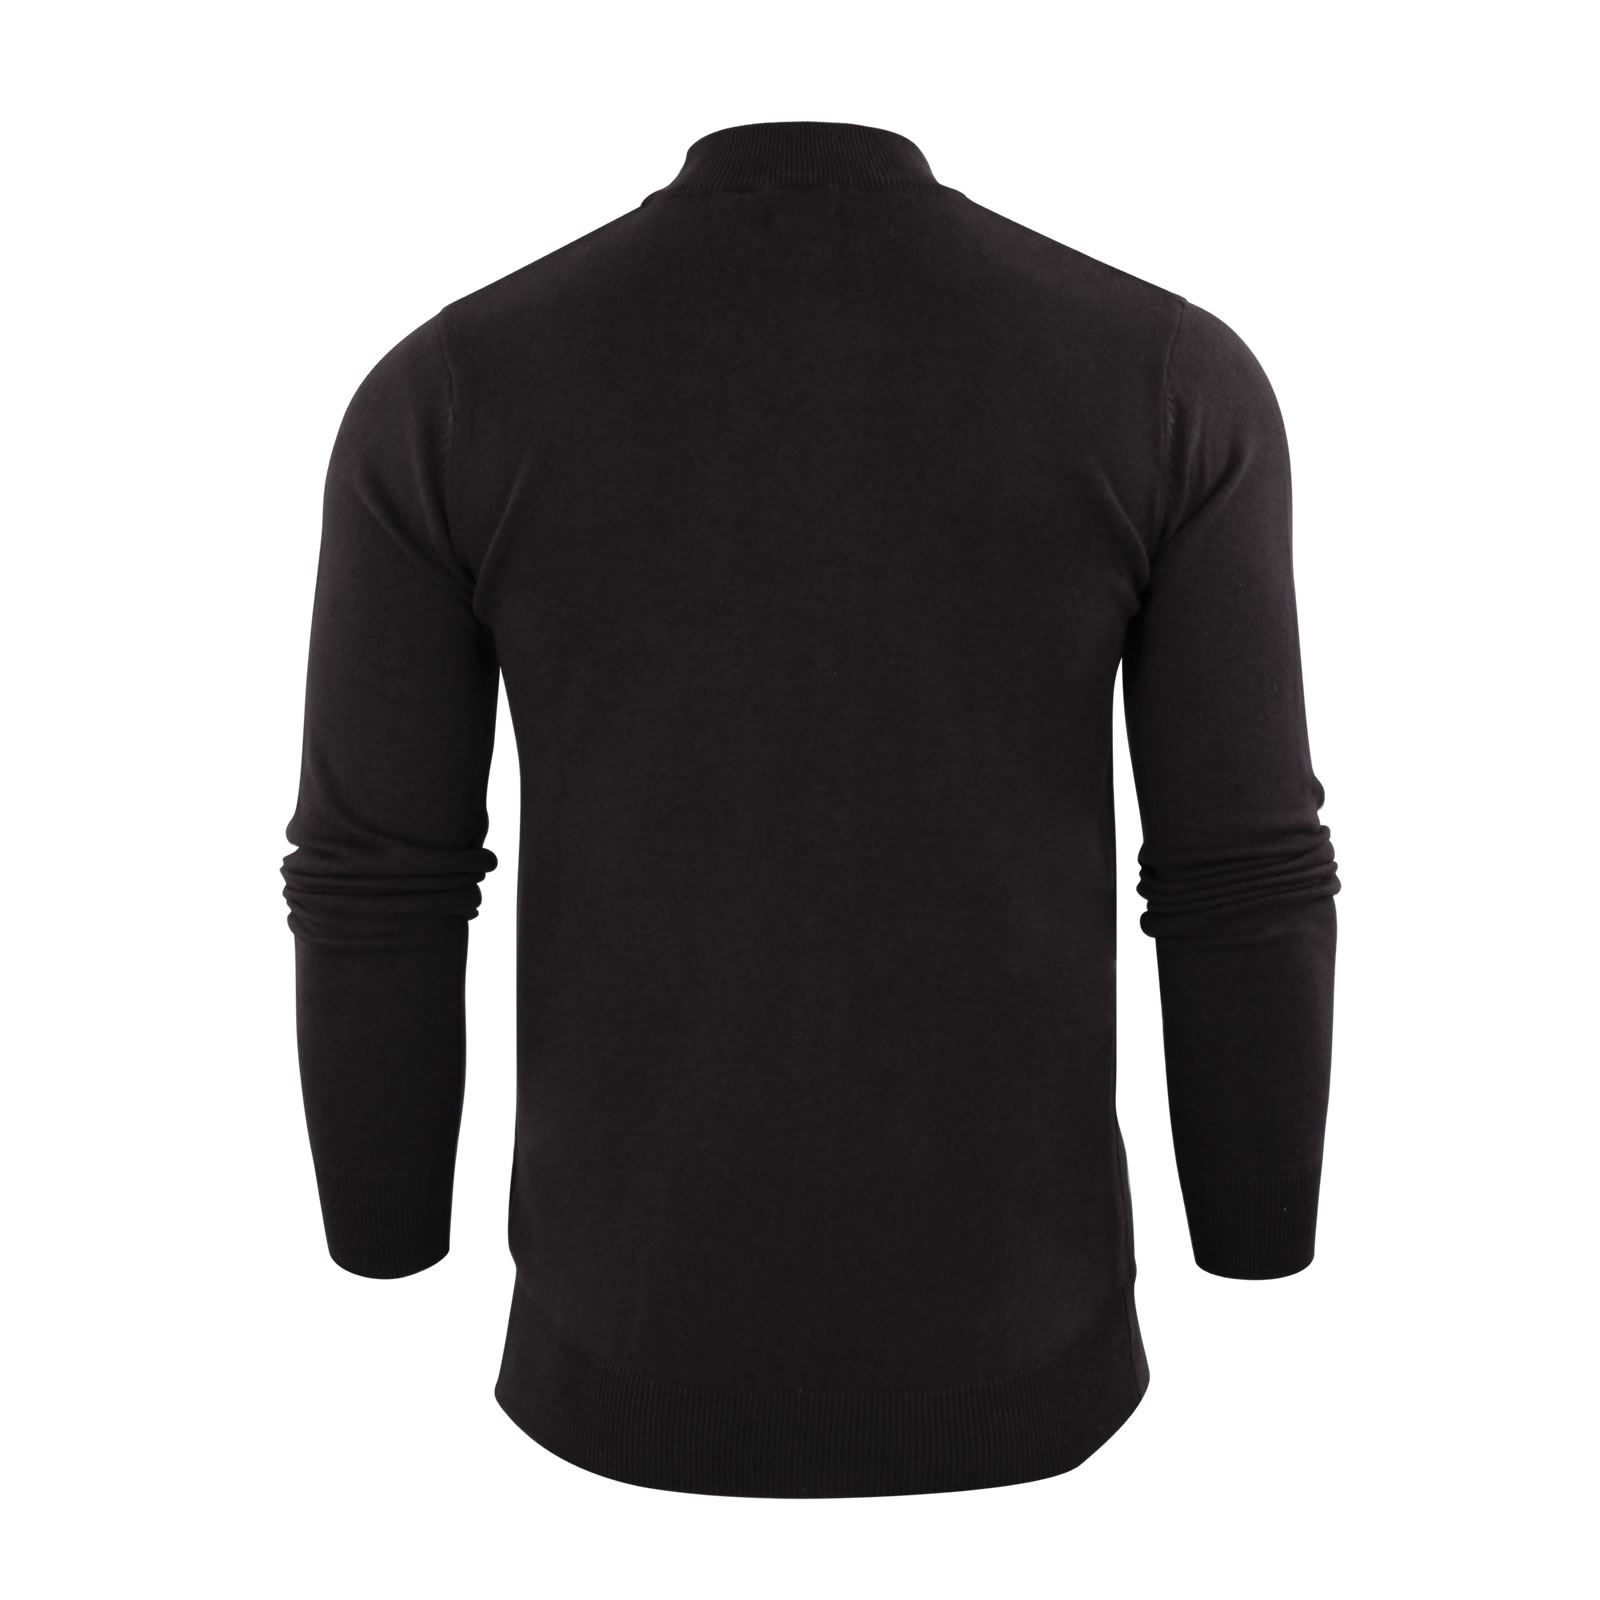 Mens-Jumper-Brave-Soul-Turtle-Neck-Cotton-Pull-Over-Sweater thumbnail 6